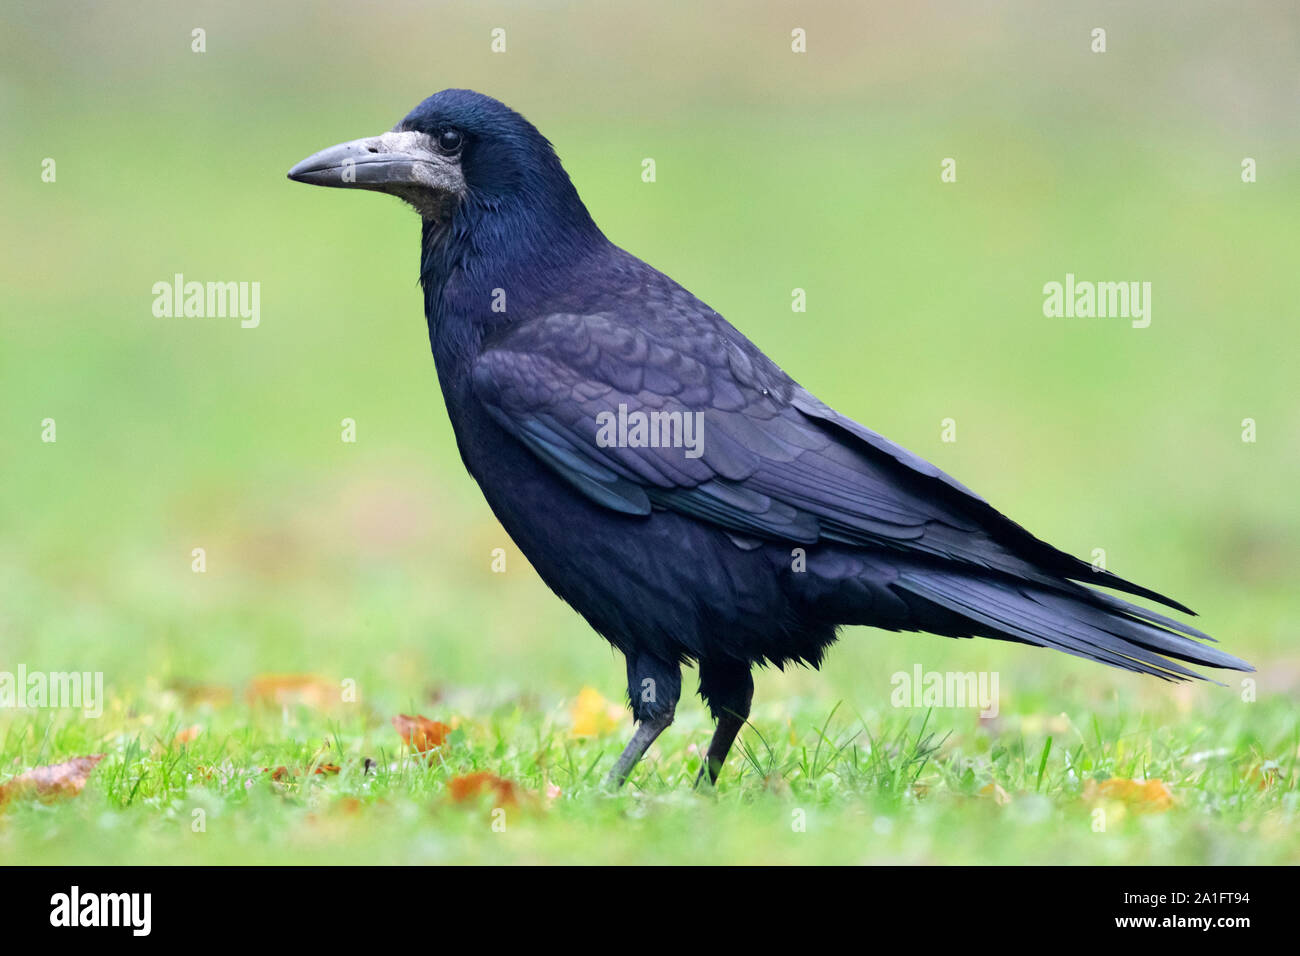 Rook (Corvus frugileus), side view of an adult standing on the ground, Warsaw, Poland Stock Photo